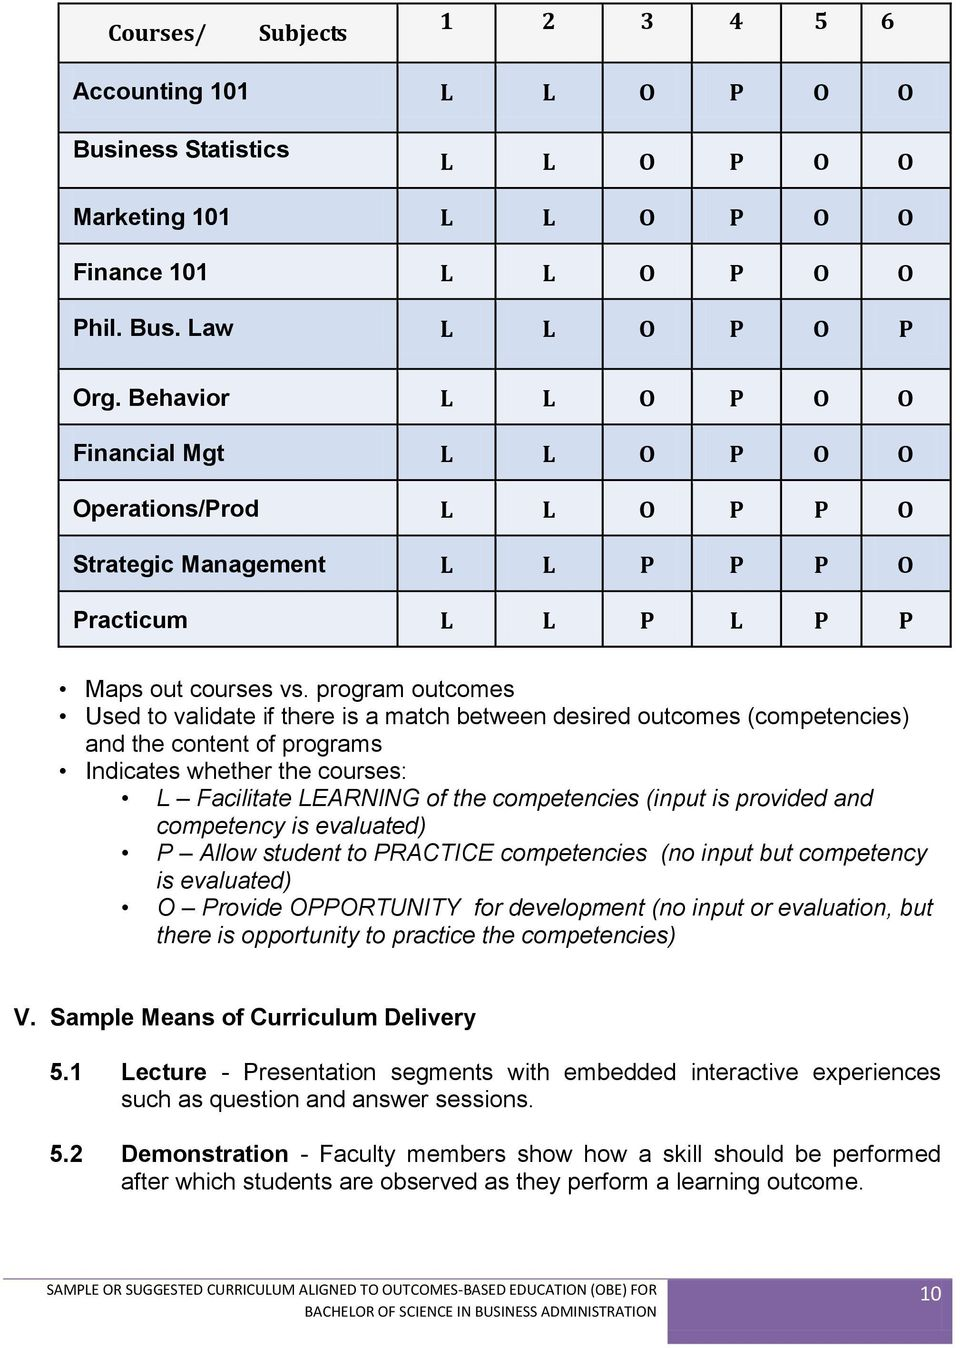 program outcomes Used to validate if there is a match between desired outcomes (competencies) and the content of programs Indicates whether the courses: L Facilitate LEARNING of the competencies